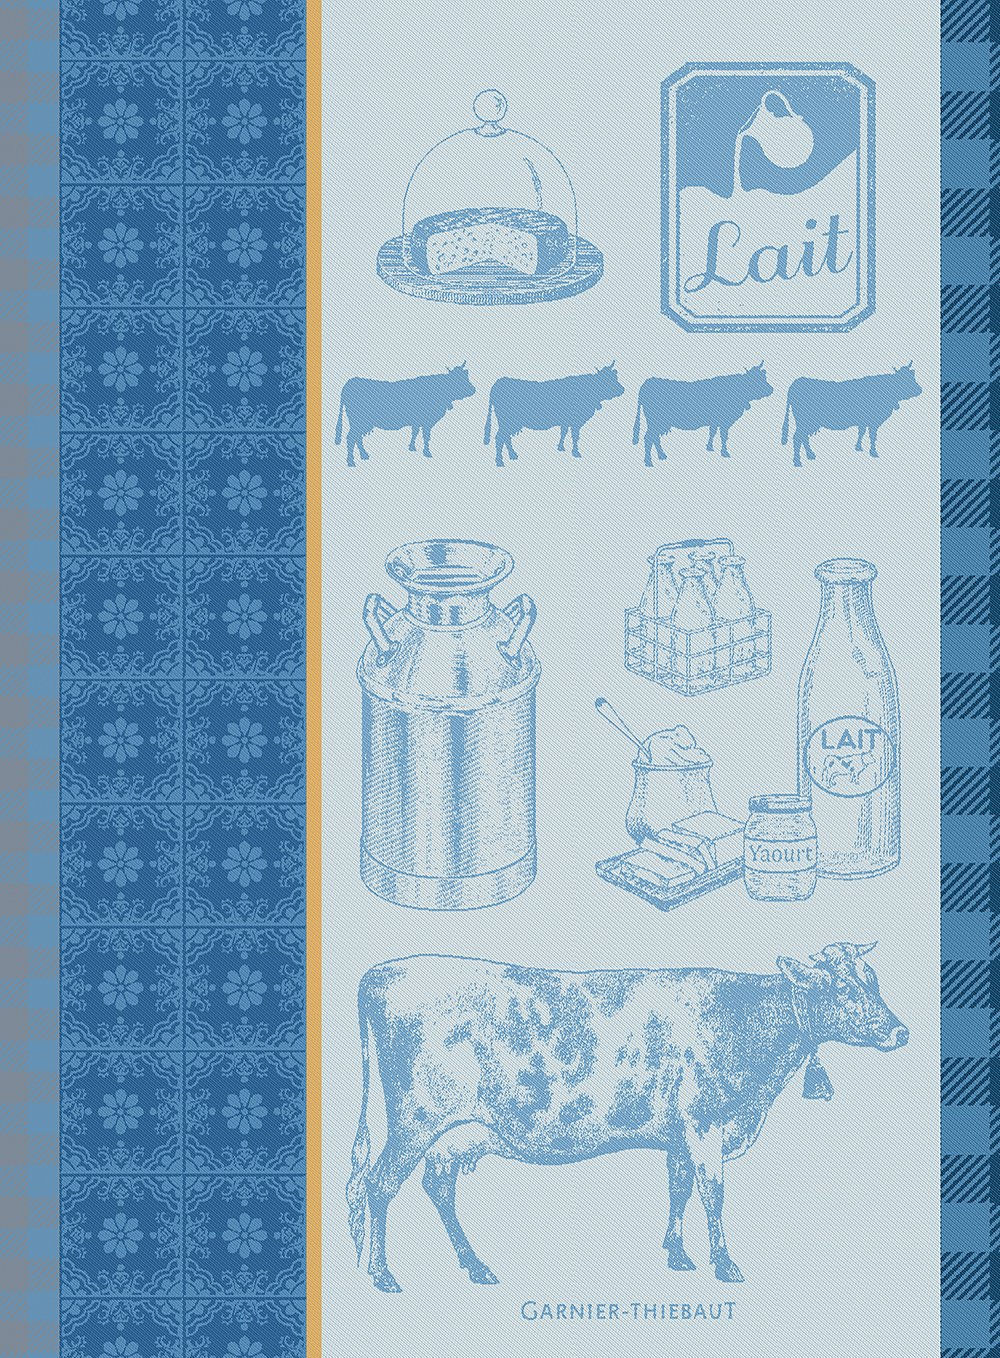 Garnier Thiebaut, Le Vache et Le Lait Bleu (Cow and Milk, Blue) French Jacquard Kitchen Towel, 100 Percent Cotton, 22 Inches x 30 Inches